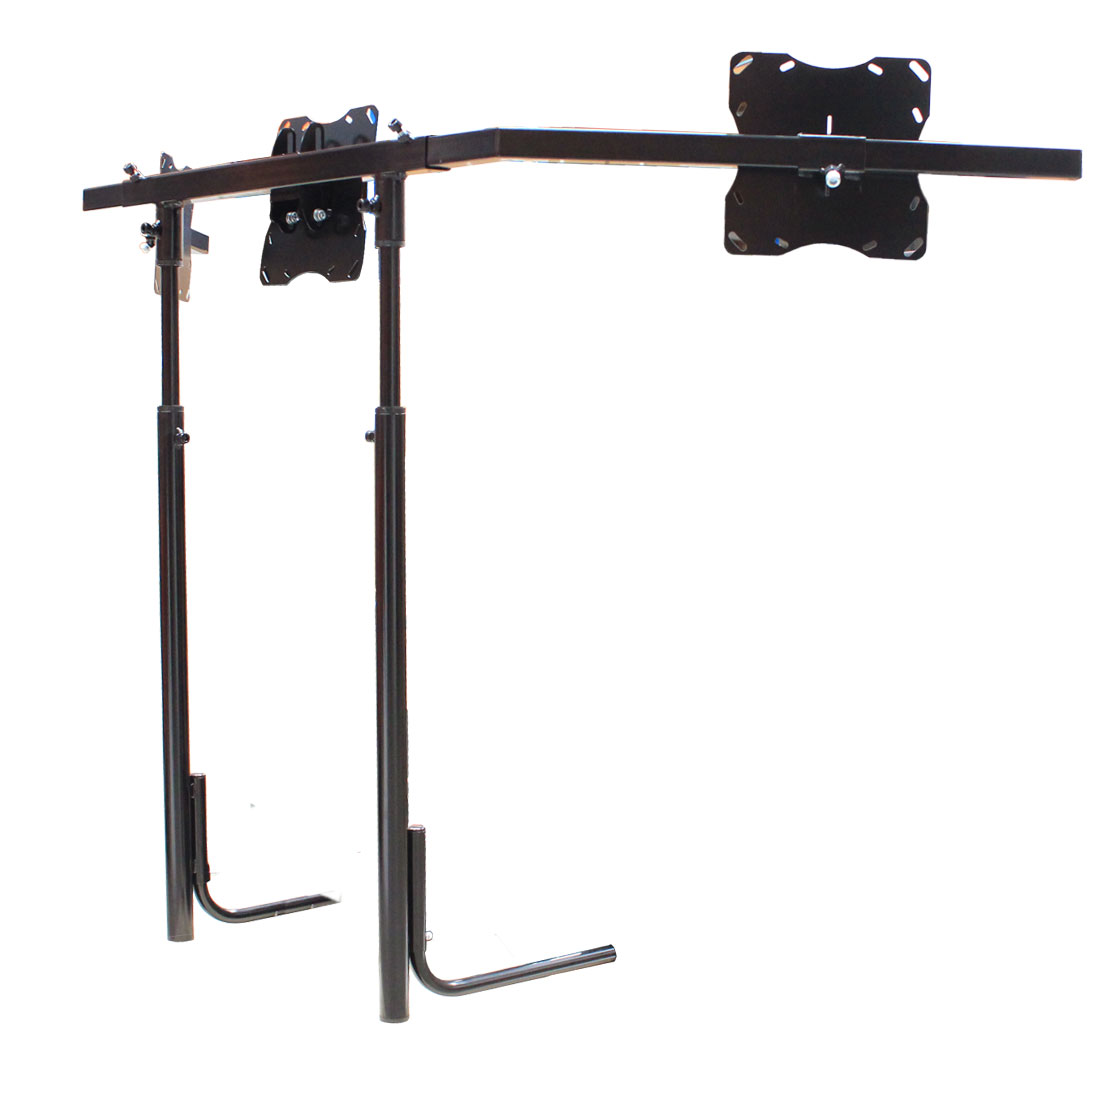 LCD/TV X 3 SUPPORT